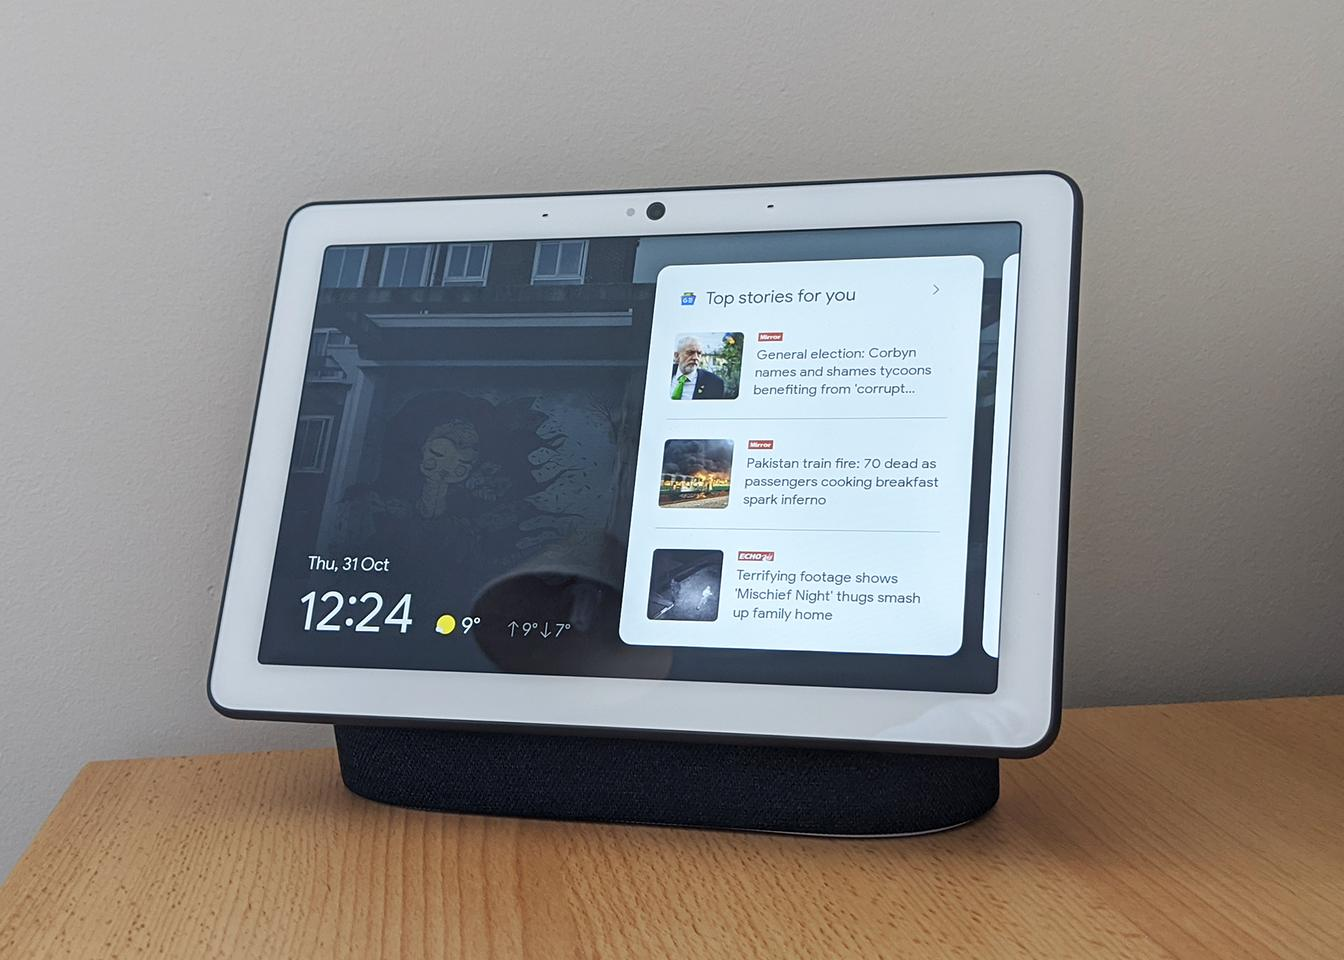 Most interaction is done with your voice, but features can be accessed through the touchscreen